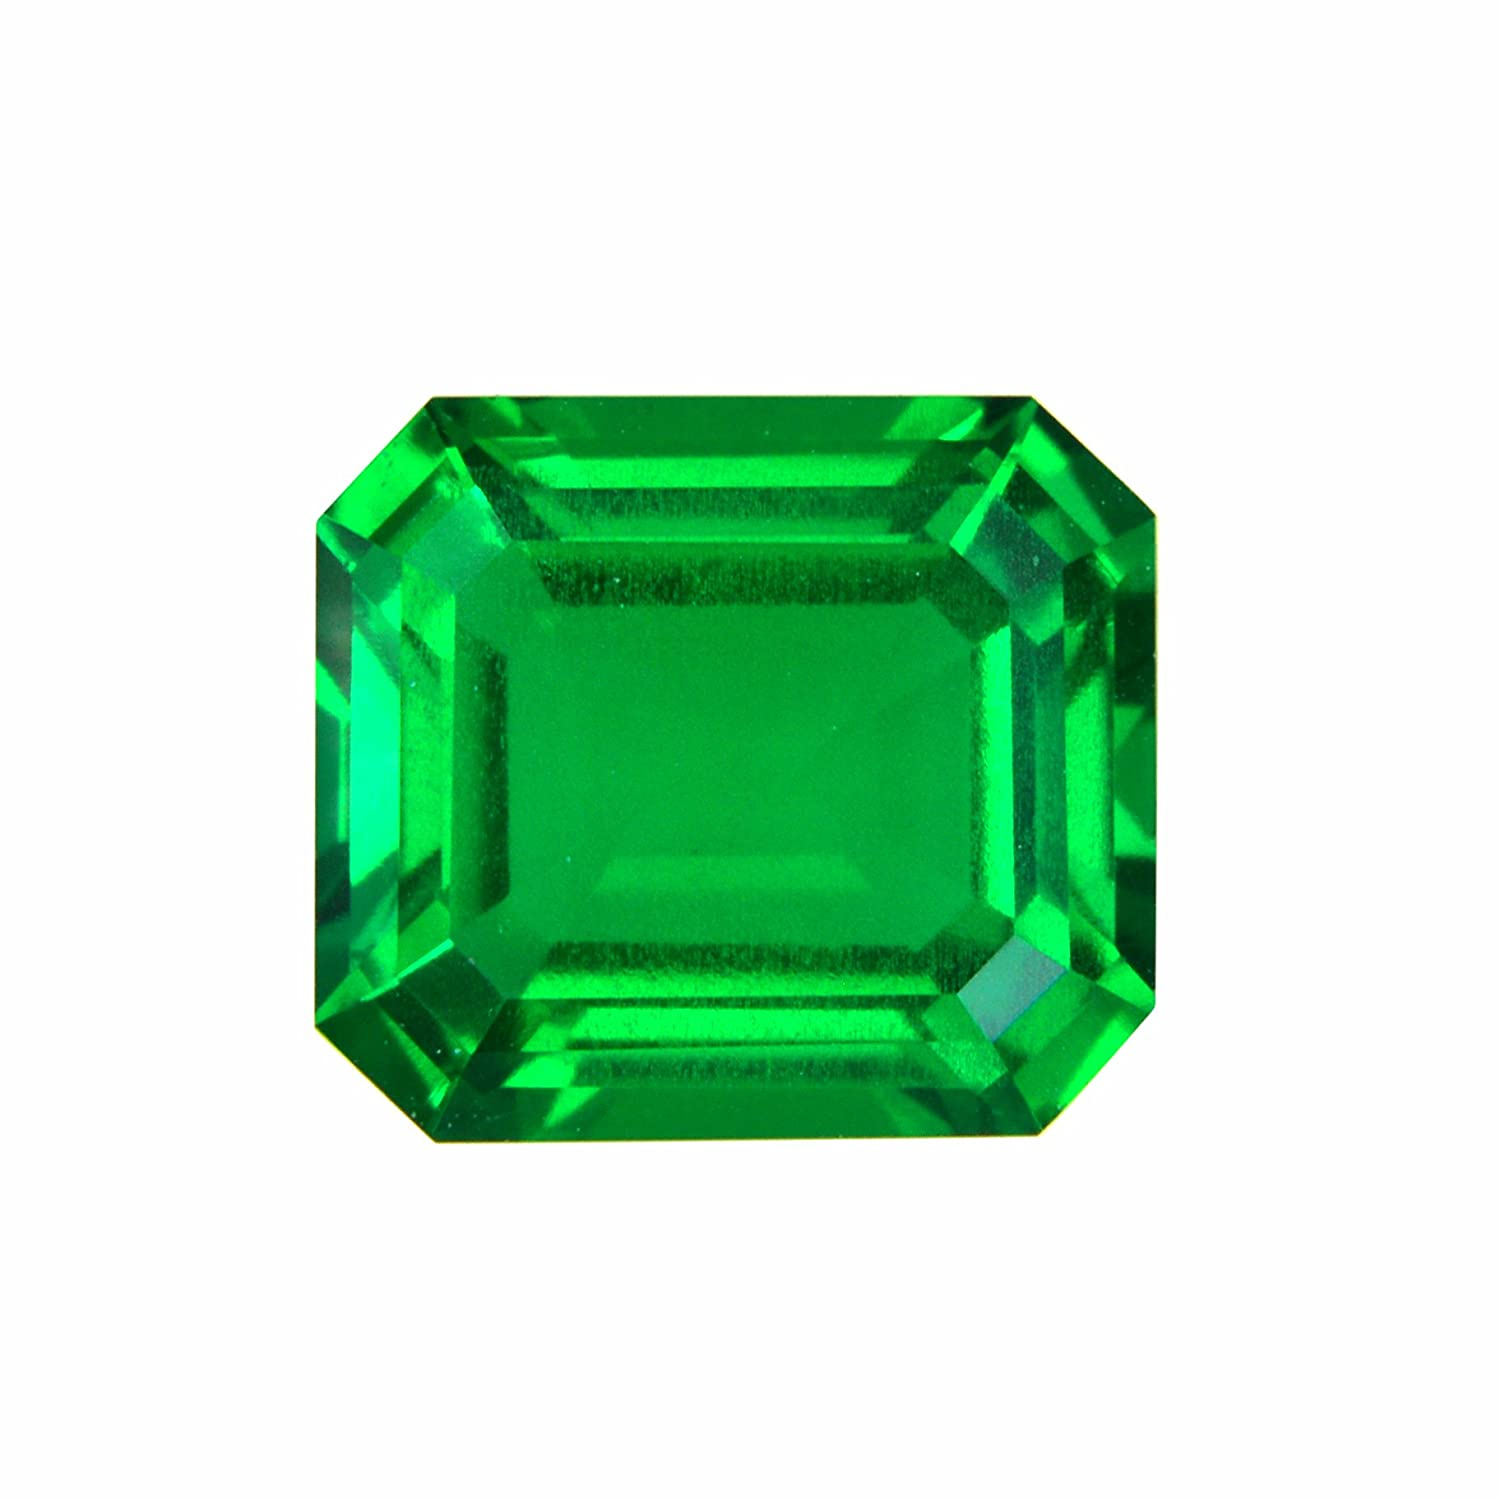 crop trend of editor upscale chrysoprase jewellery sutra jade big false gems tsavorite malachite scale gemstone colombian ring envy article subsampling with green emerald the